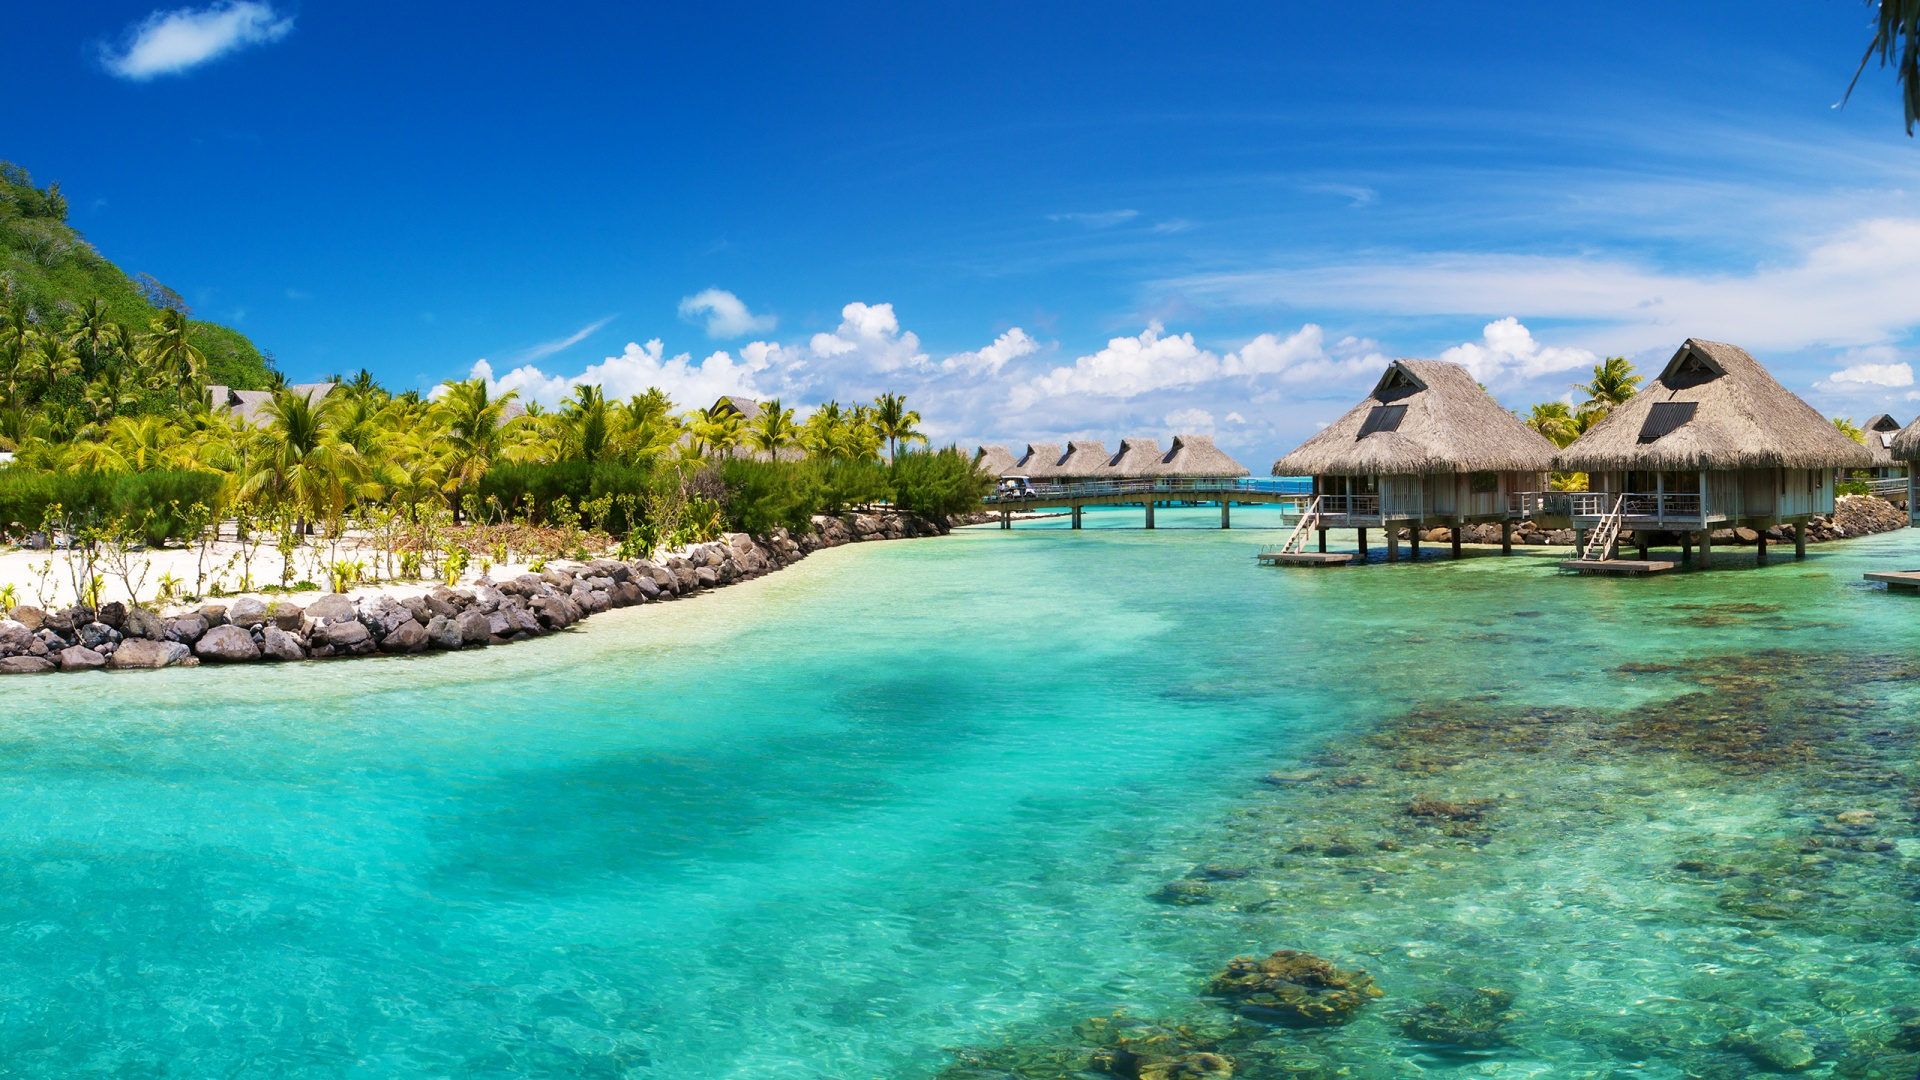 United Airlines Reservation Office in Belize, Belize - Airlines ...